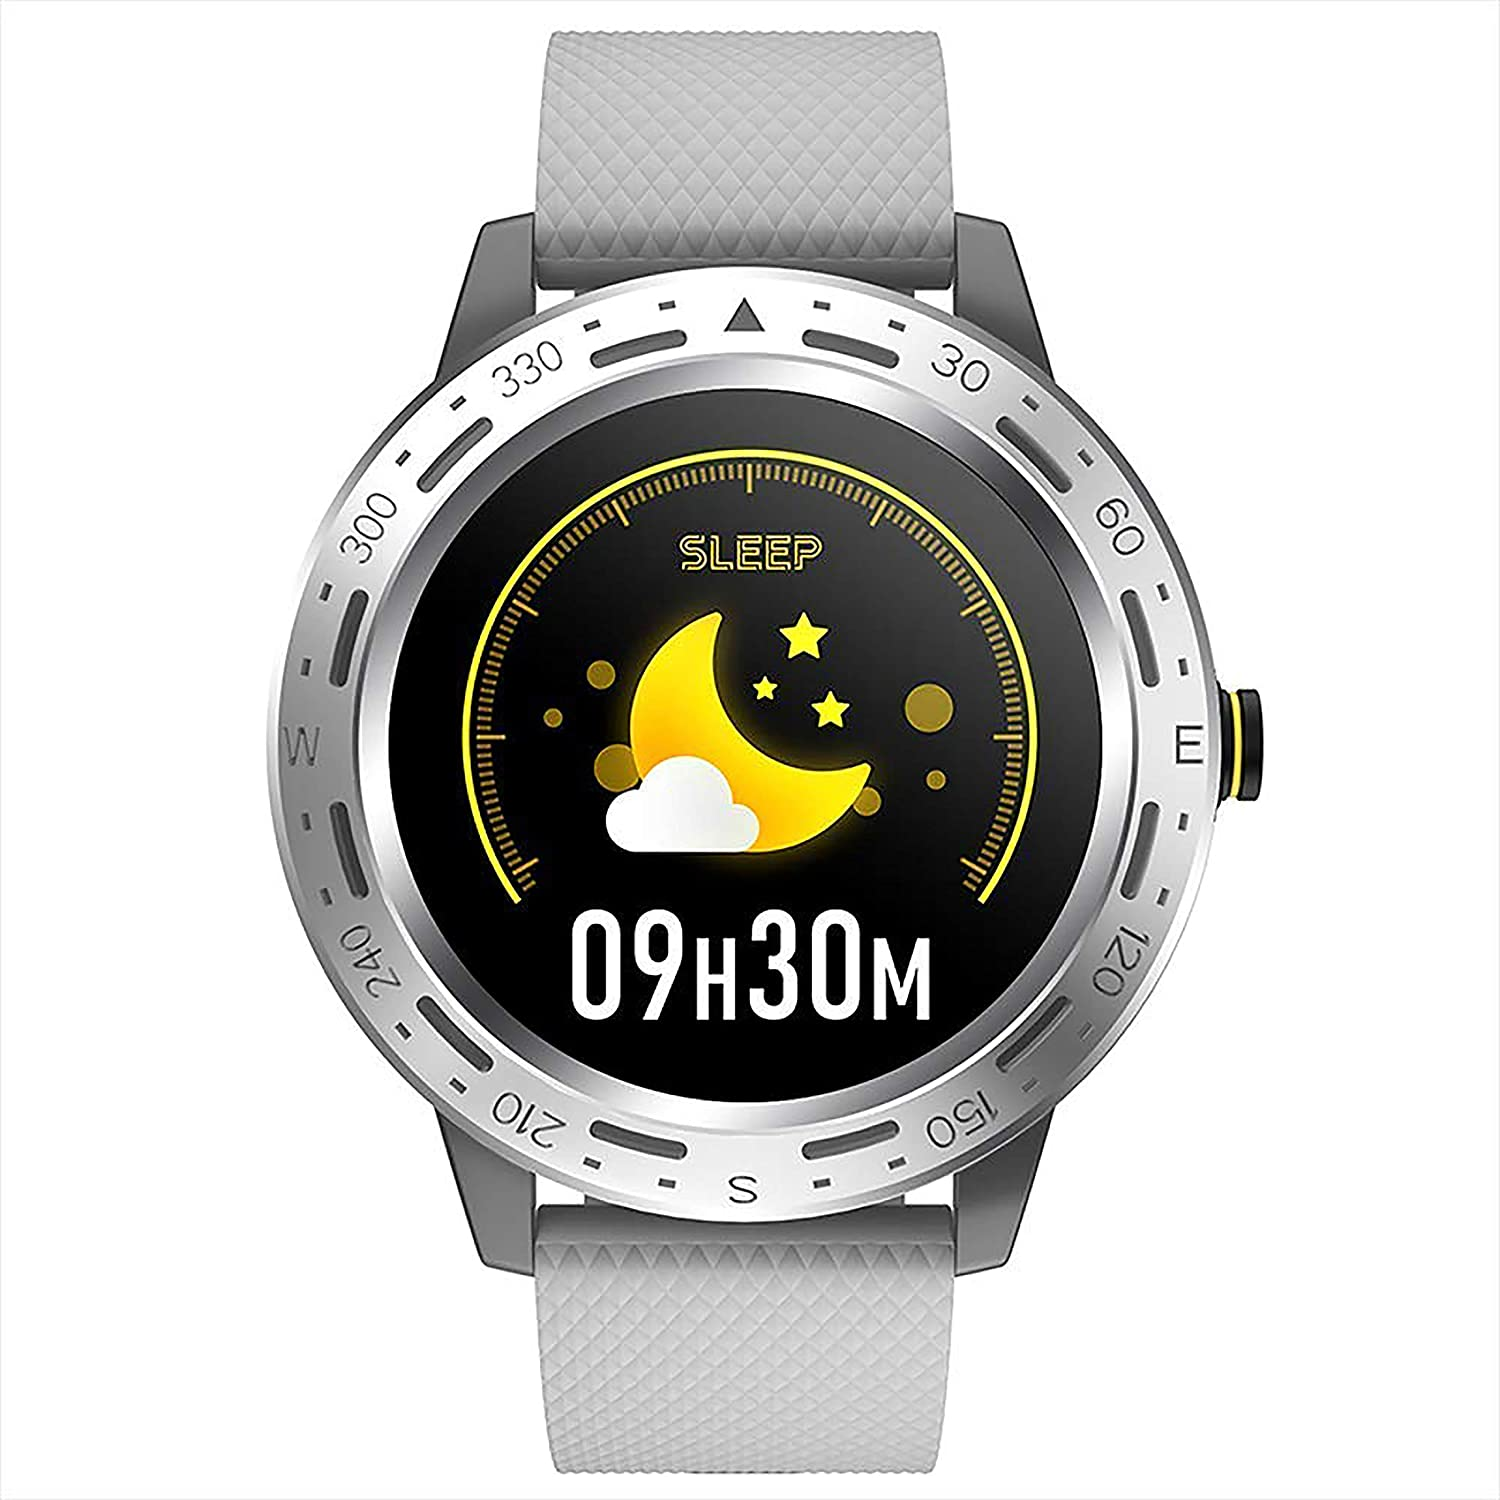 Melete Bluetooth Fitness Watch with Full Touch Screen Display